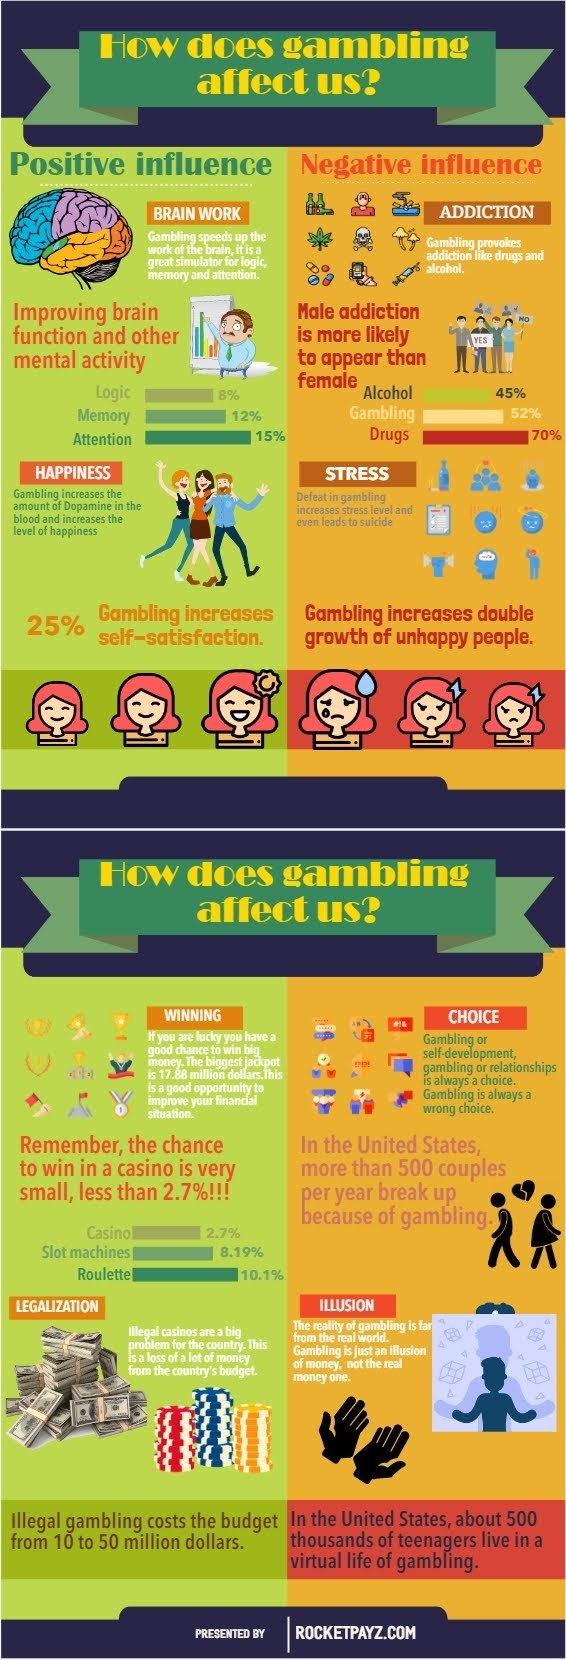 How Does Gambling Affect Us #infographic